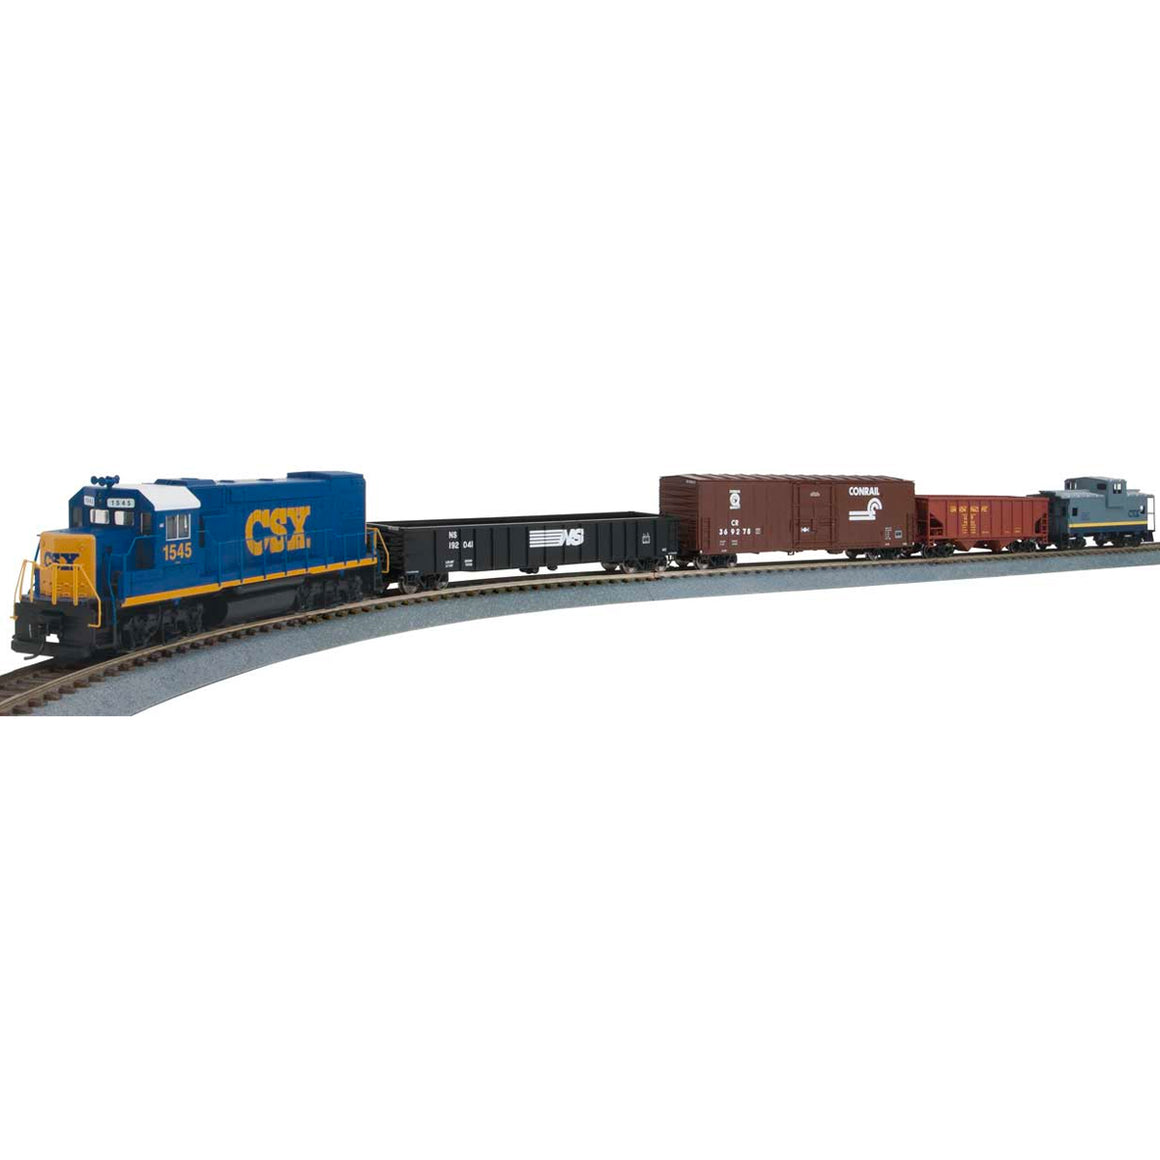 HO Scale: Train Set - WiFlyer Express - DCC & Sound - CSX